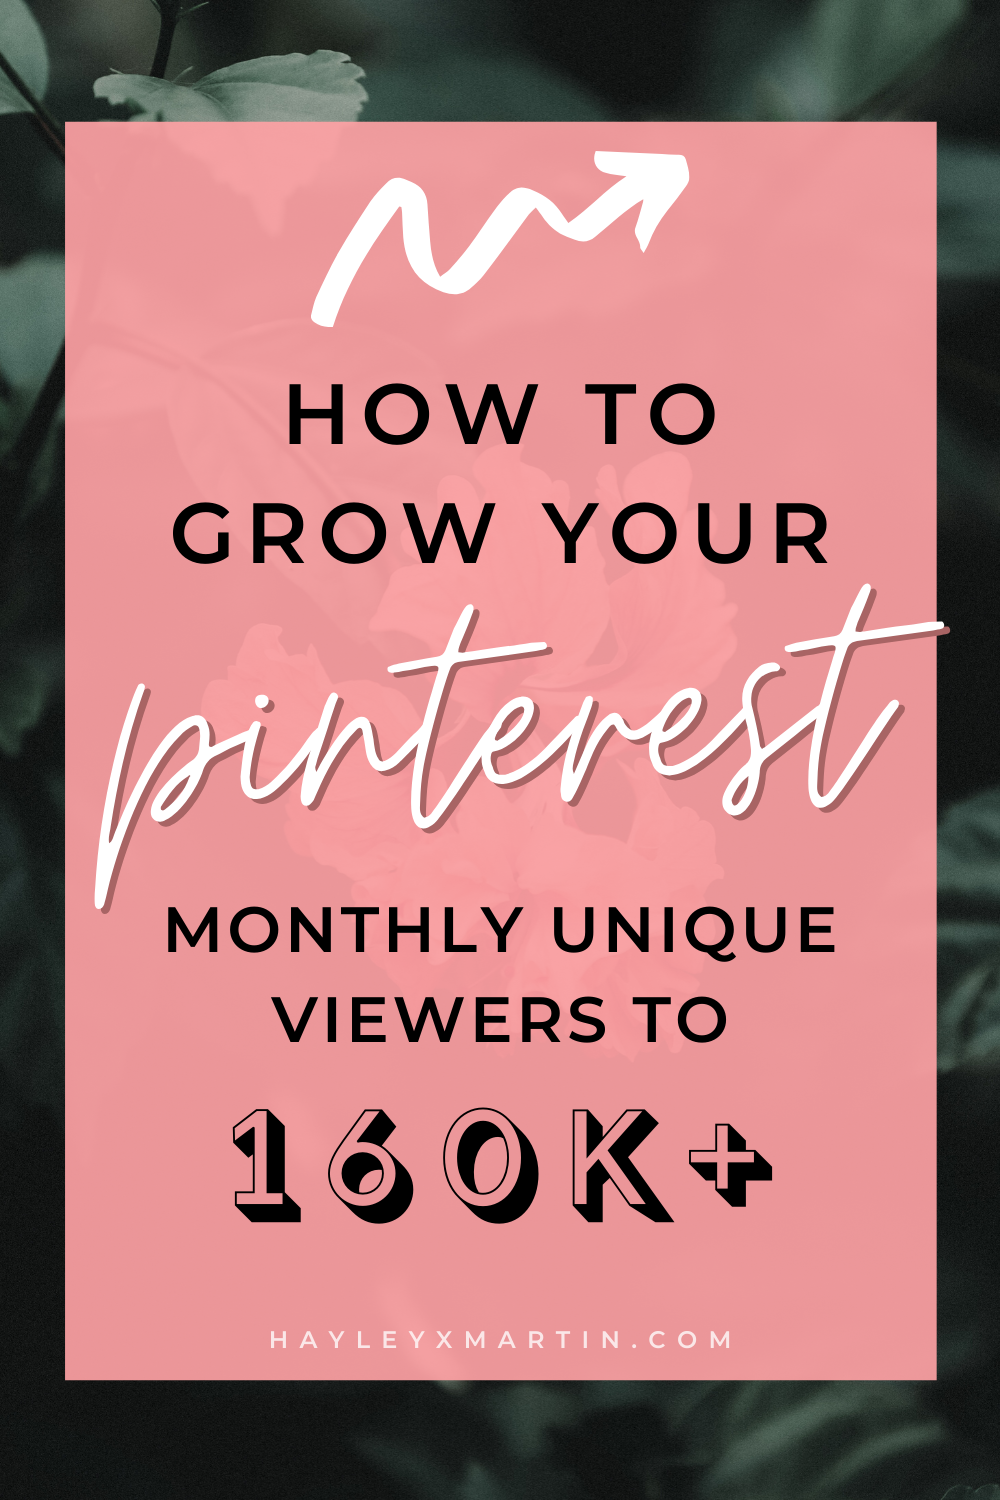 how to grow your pinterest monthly unique viewers to 160K+ | pinterest | blog traffic | increase traffic | more views | hayleyxmartin